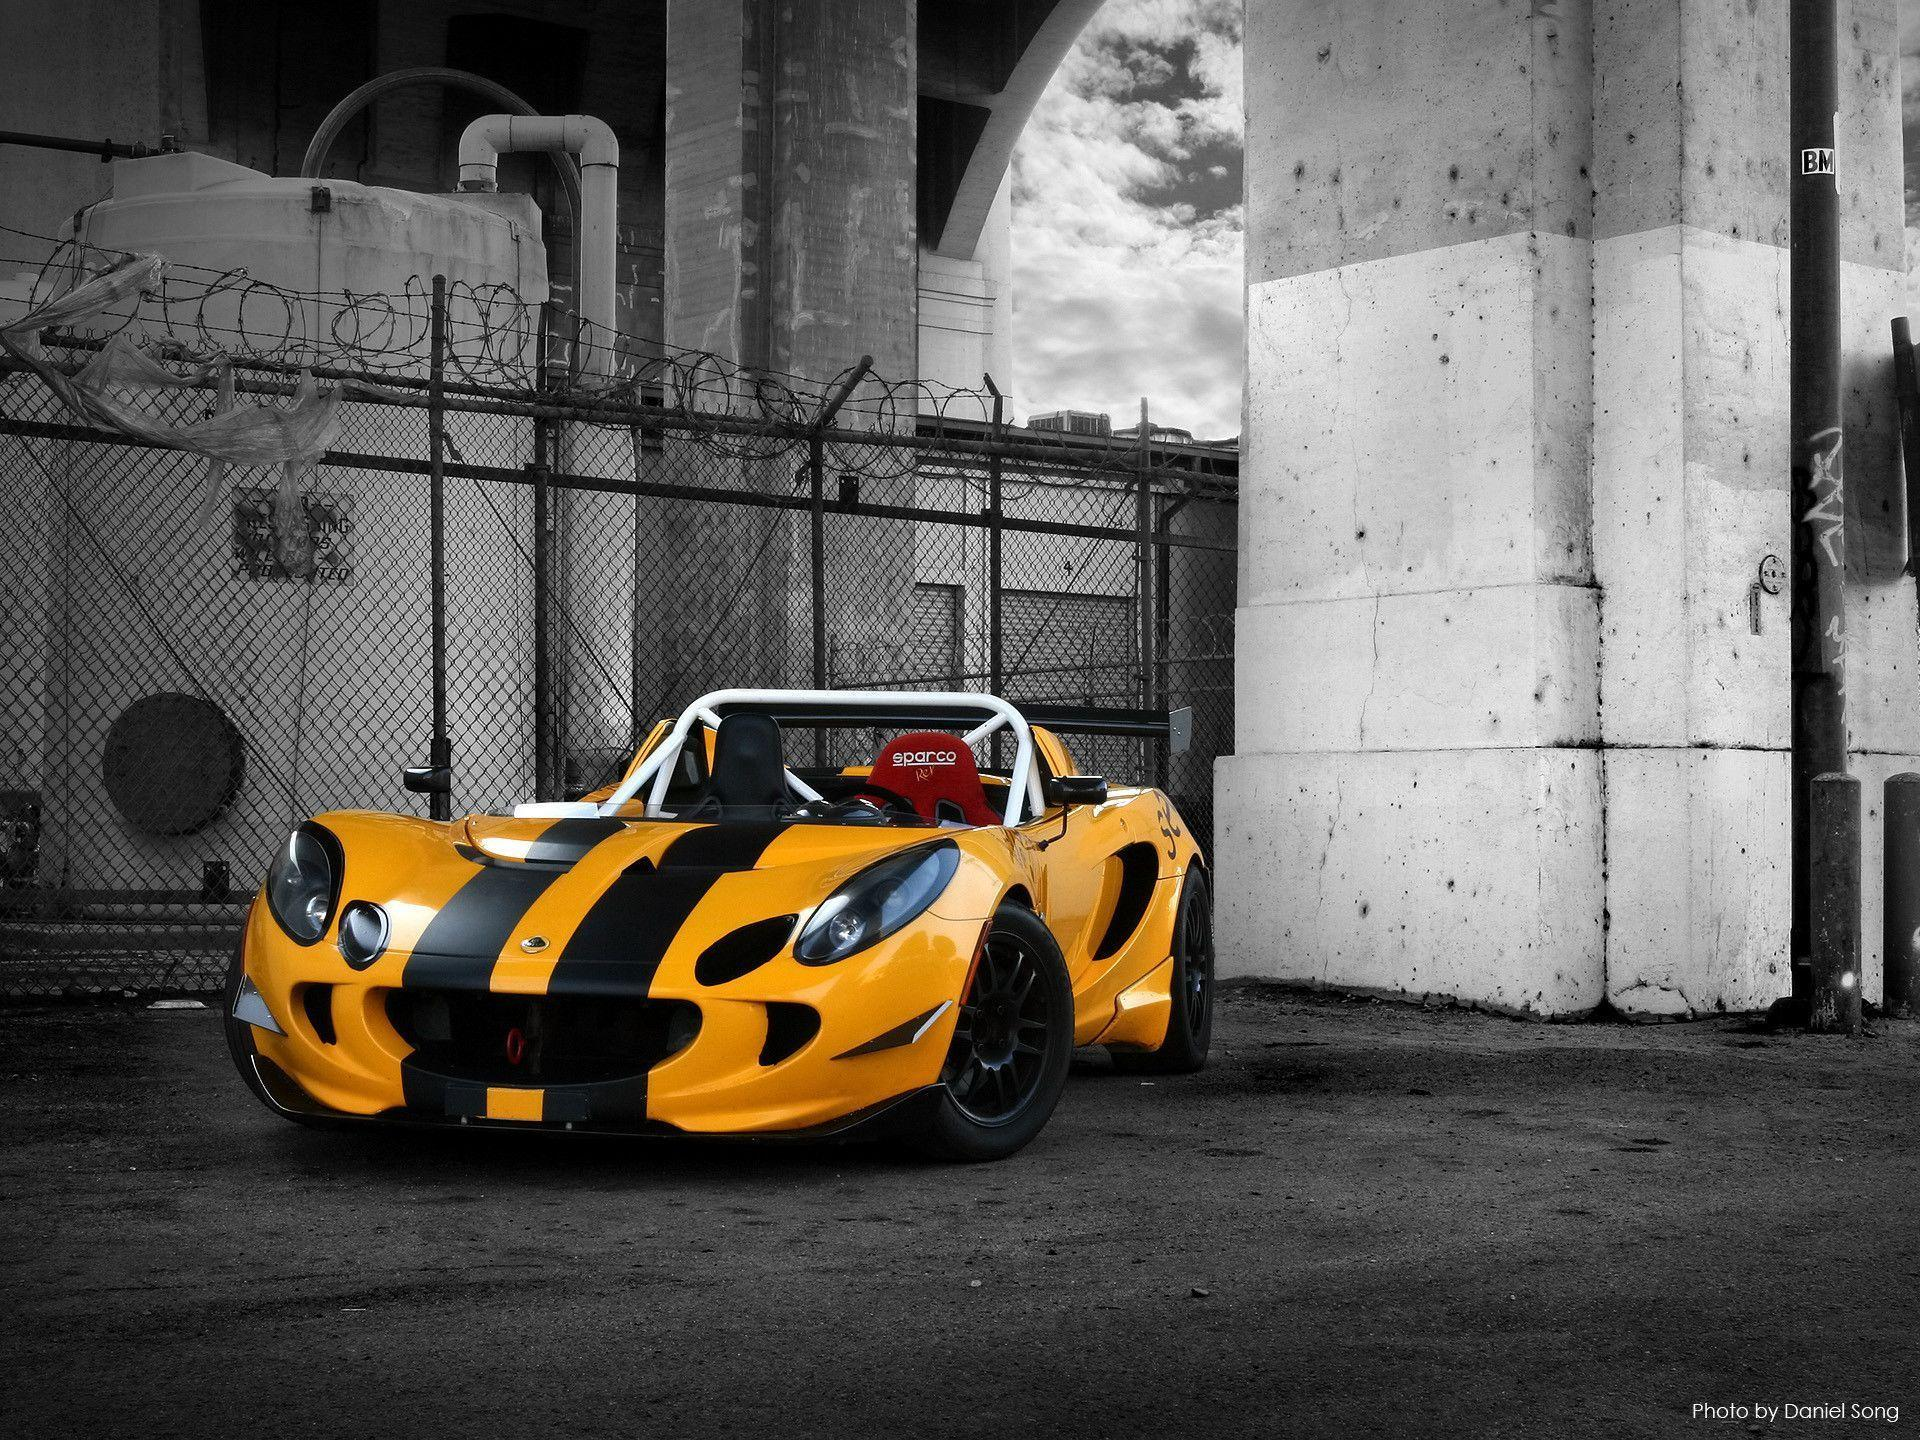 Lotus Elise Wallpapers Group with 69 items